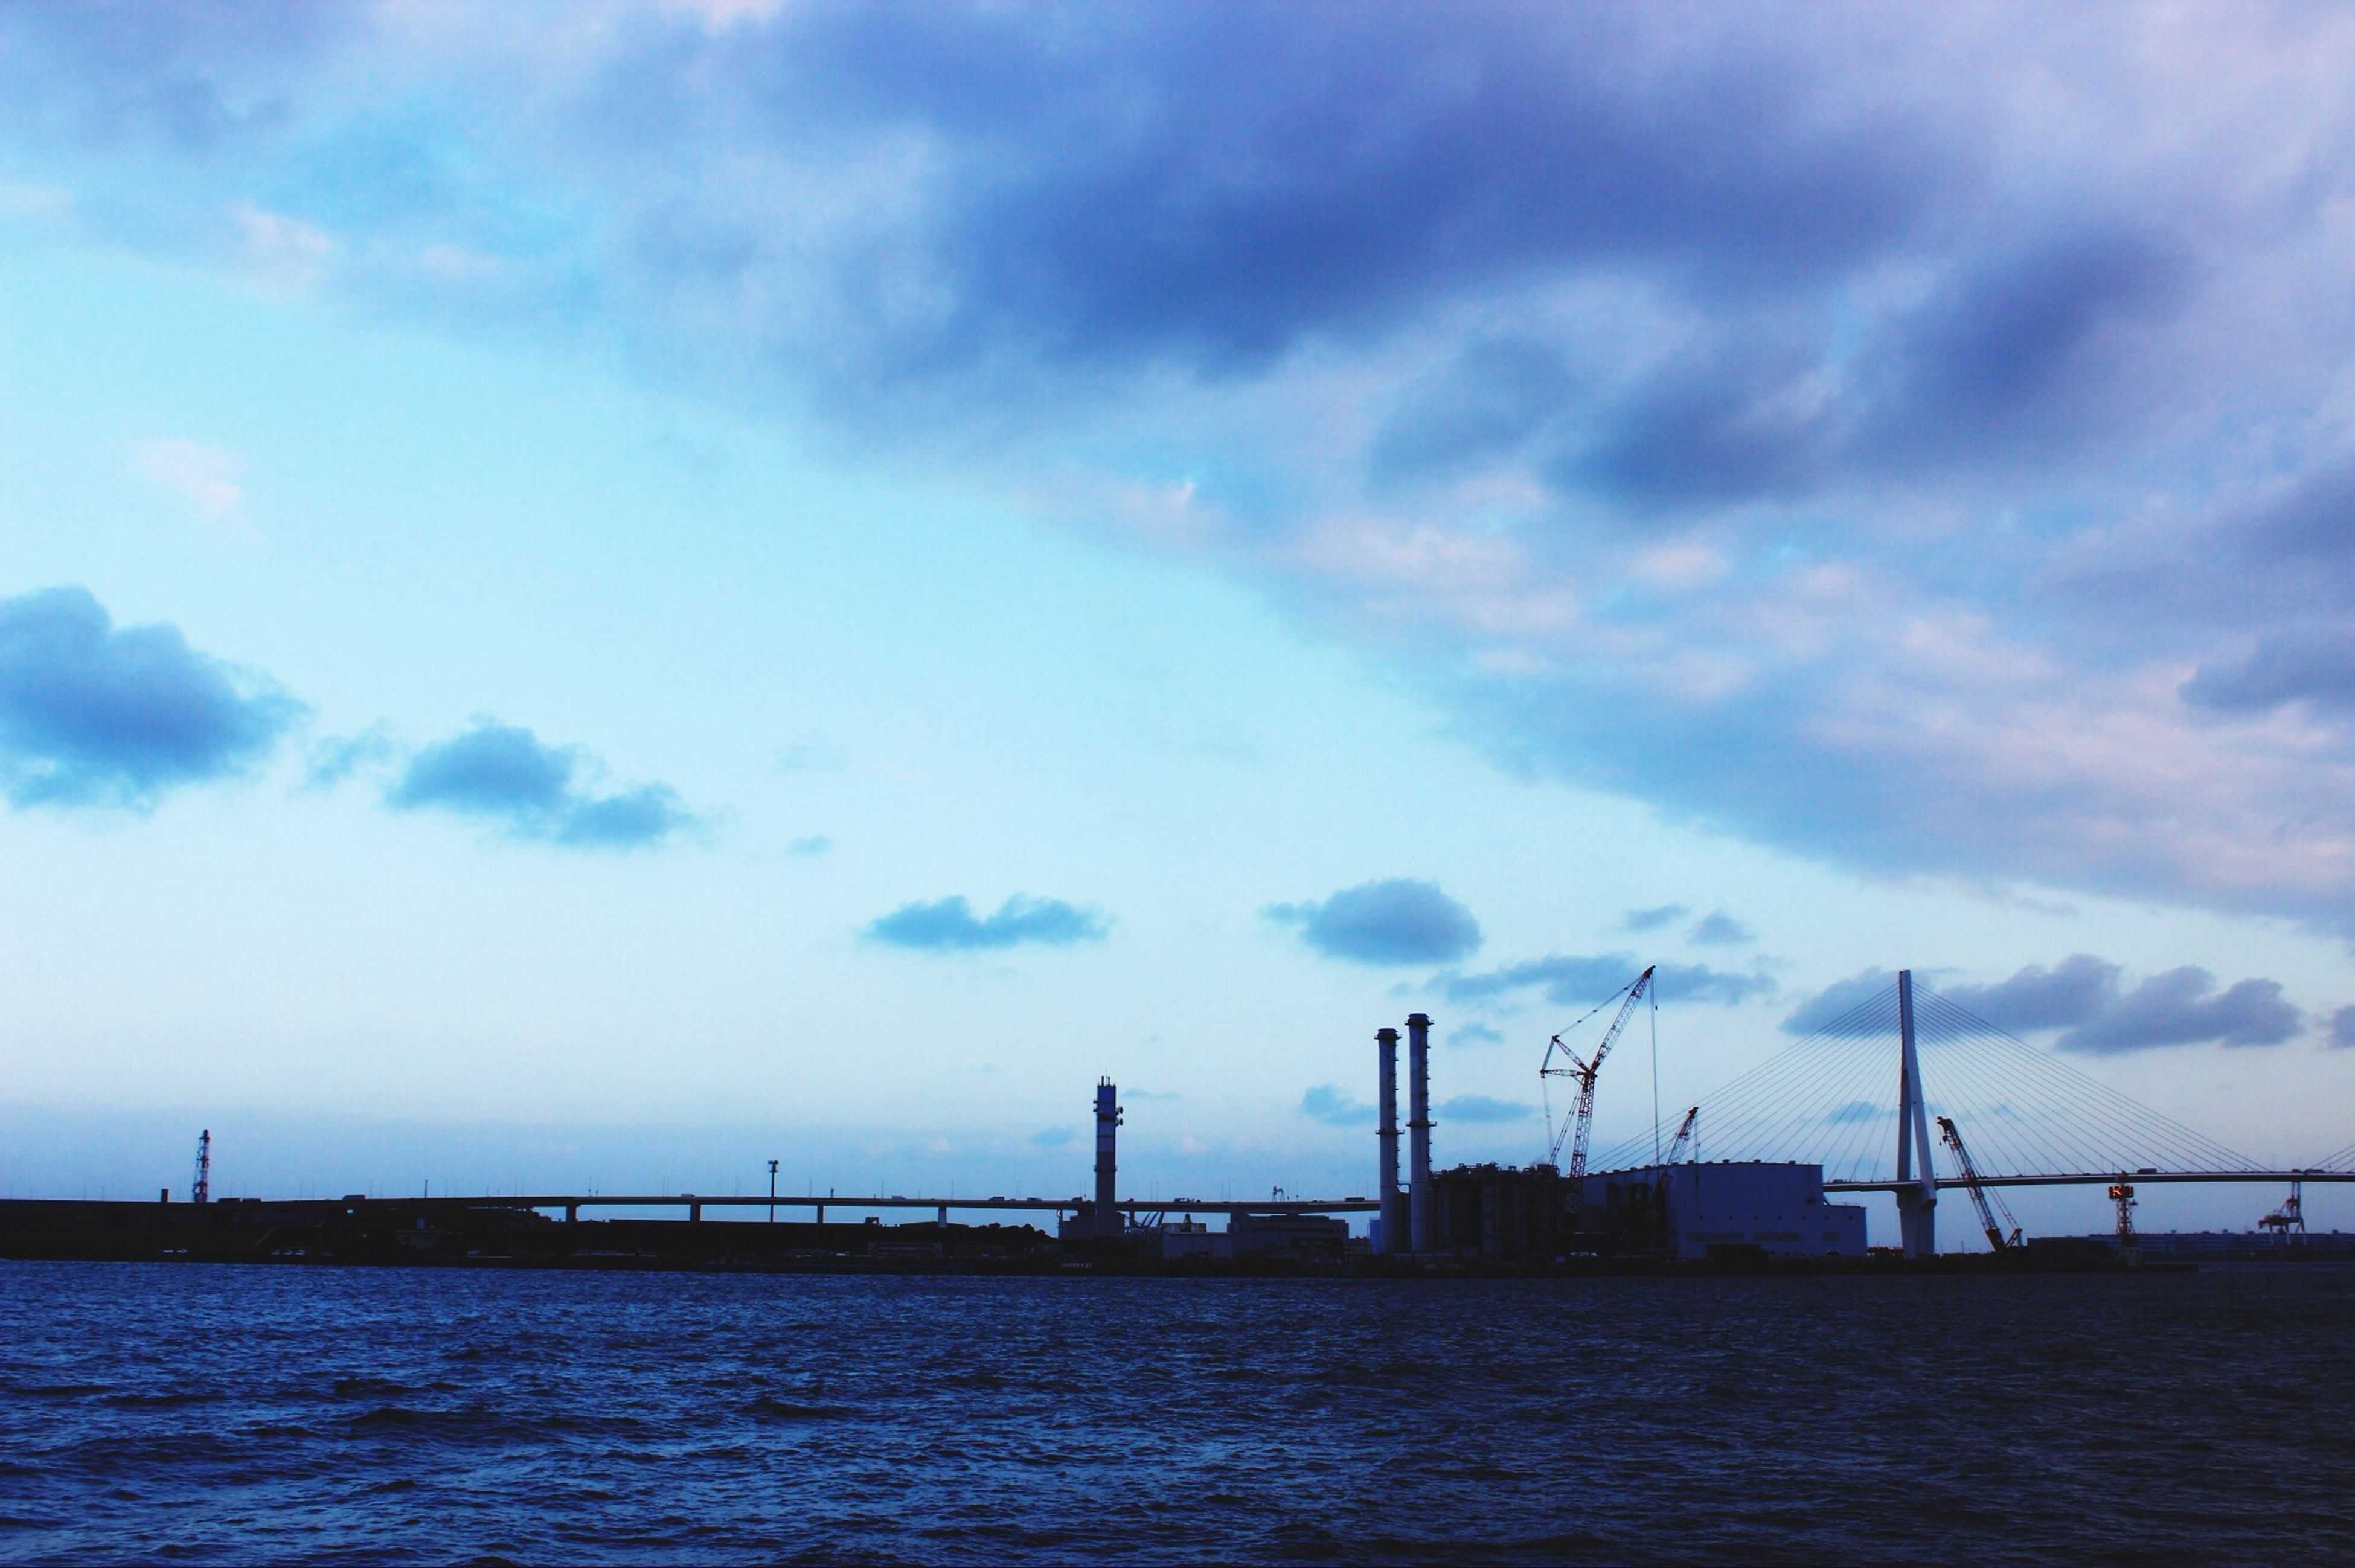 water, sky, waterfront, sea, cloud - sky, built structure, connection, cloudy, architecture, cloud, river, nature, rippled, tranquility, tranquil scene, outdoors, dusk, scenics, no people, bridge - man made structure